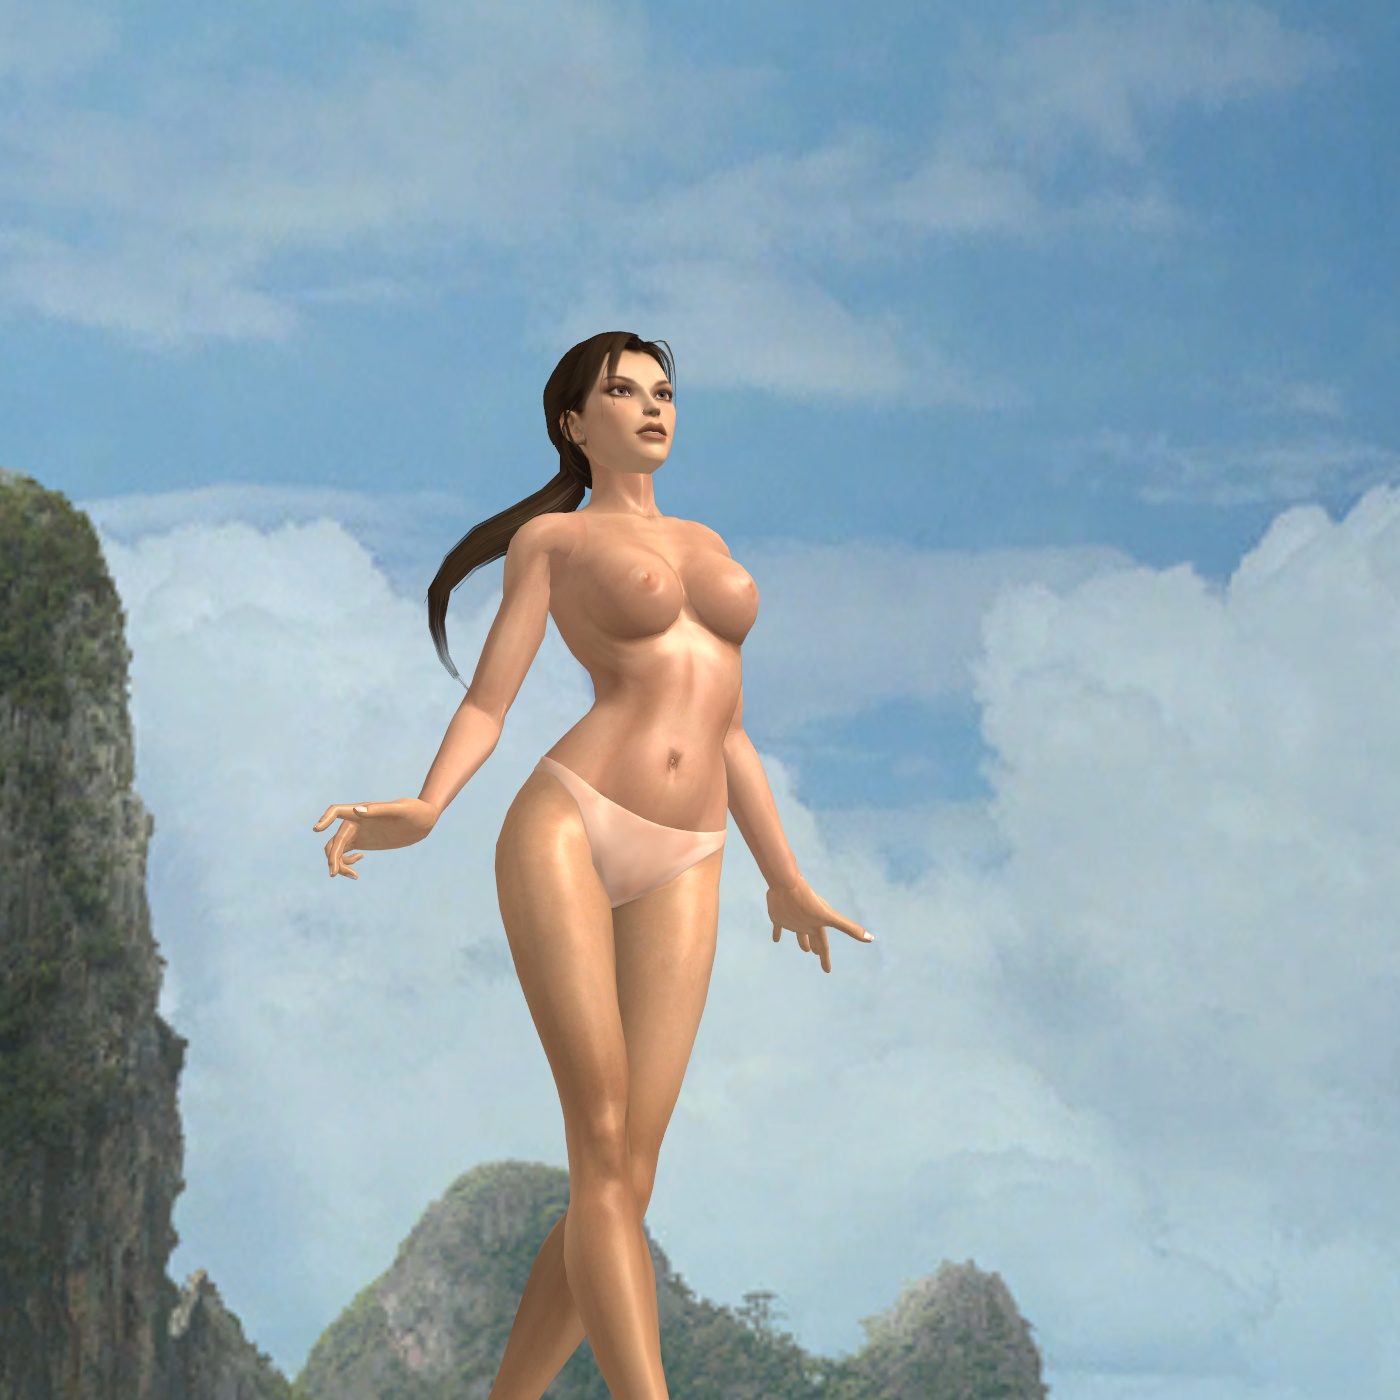 Lara croft die topless sexy galleries